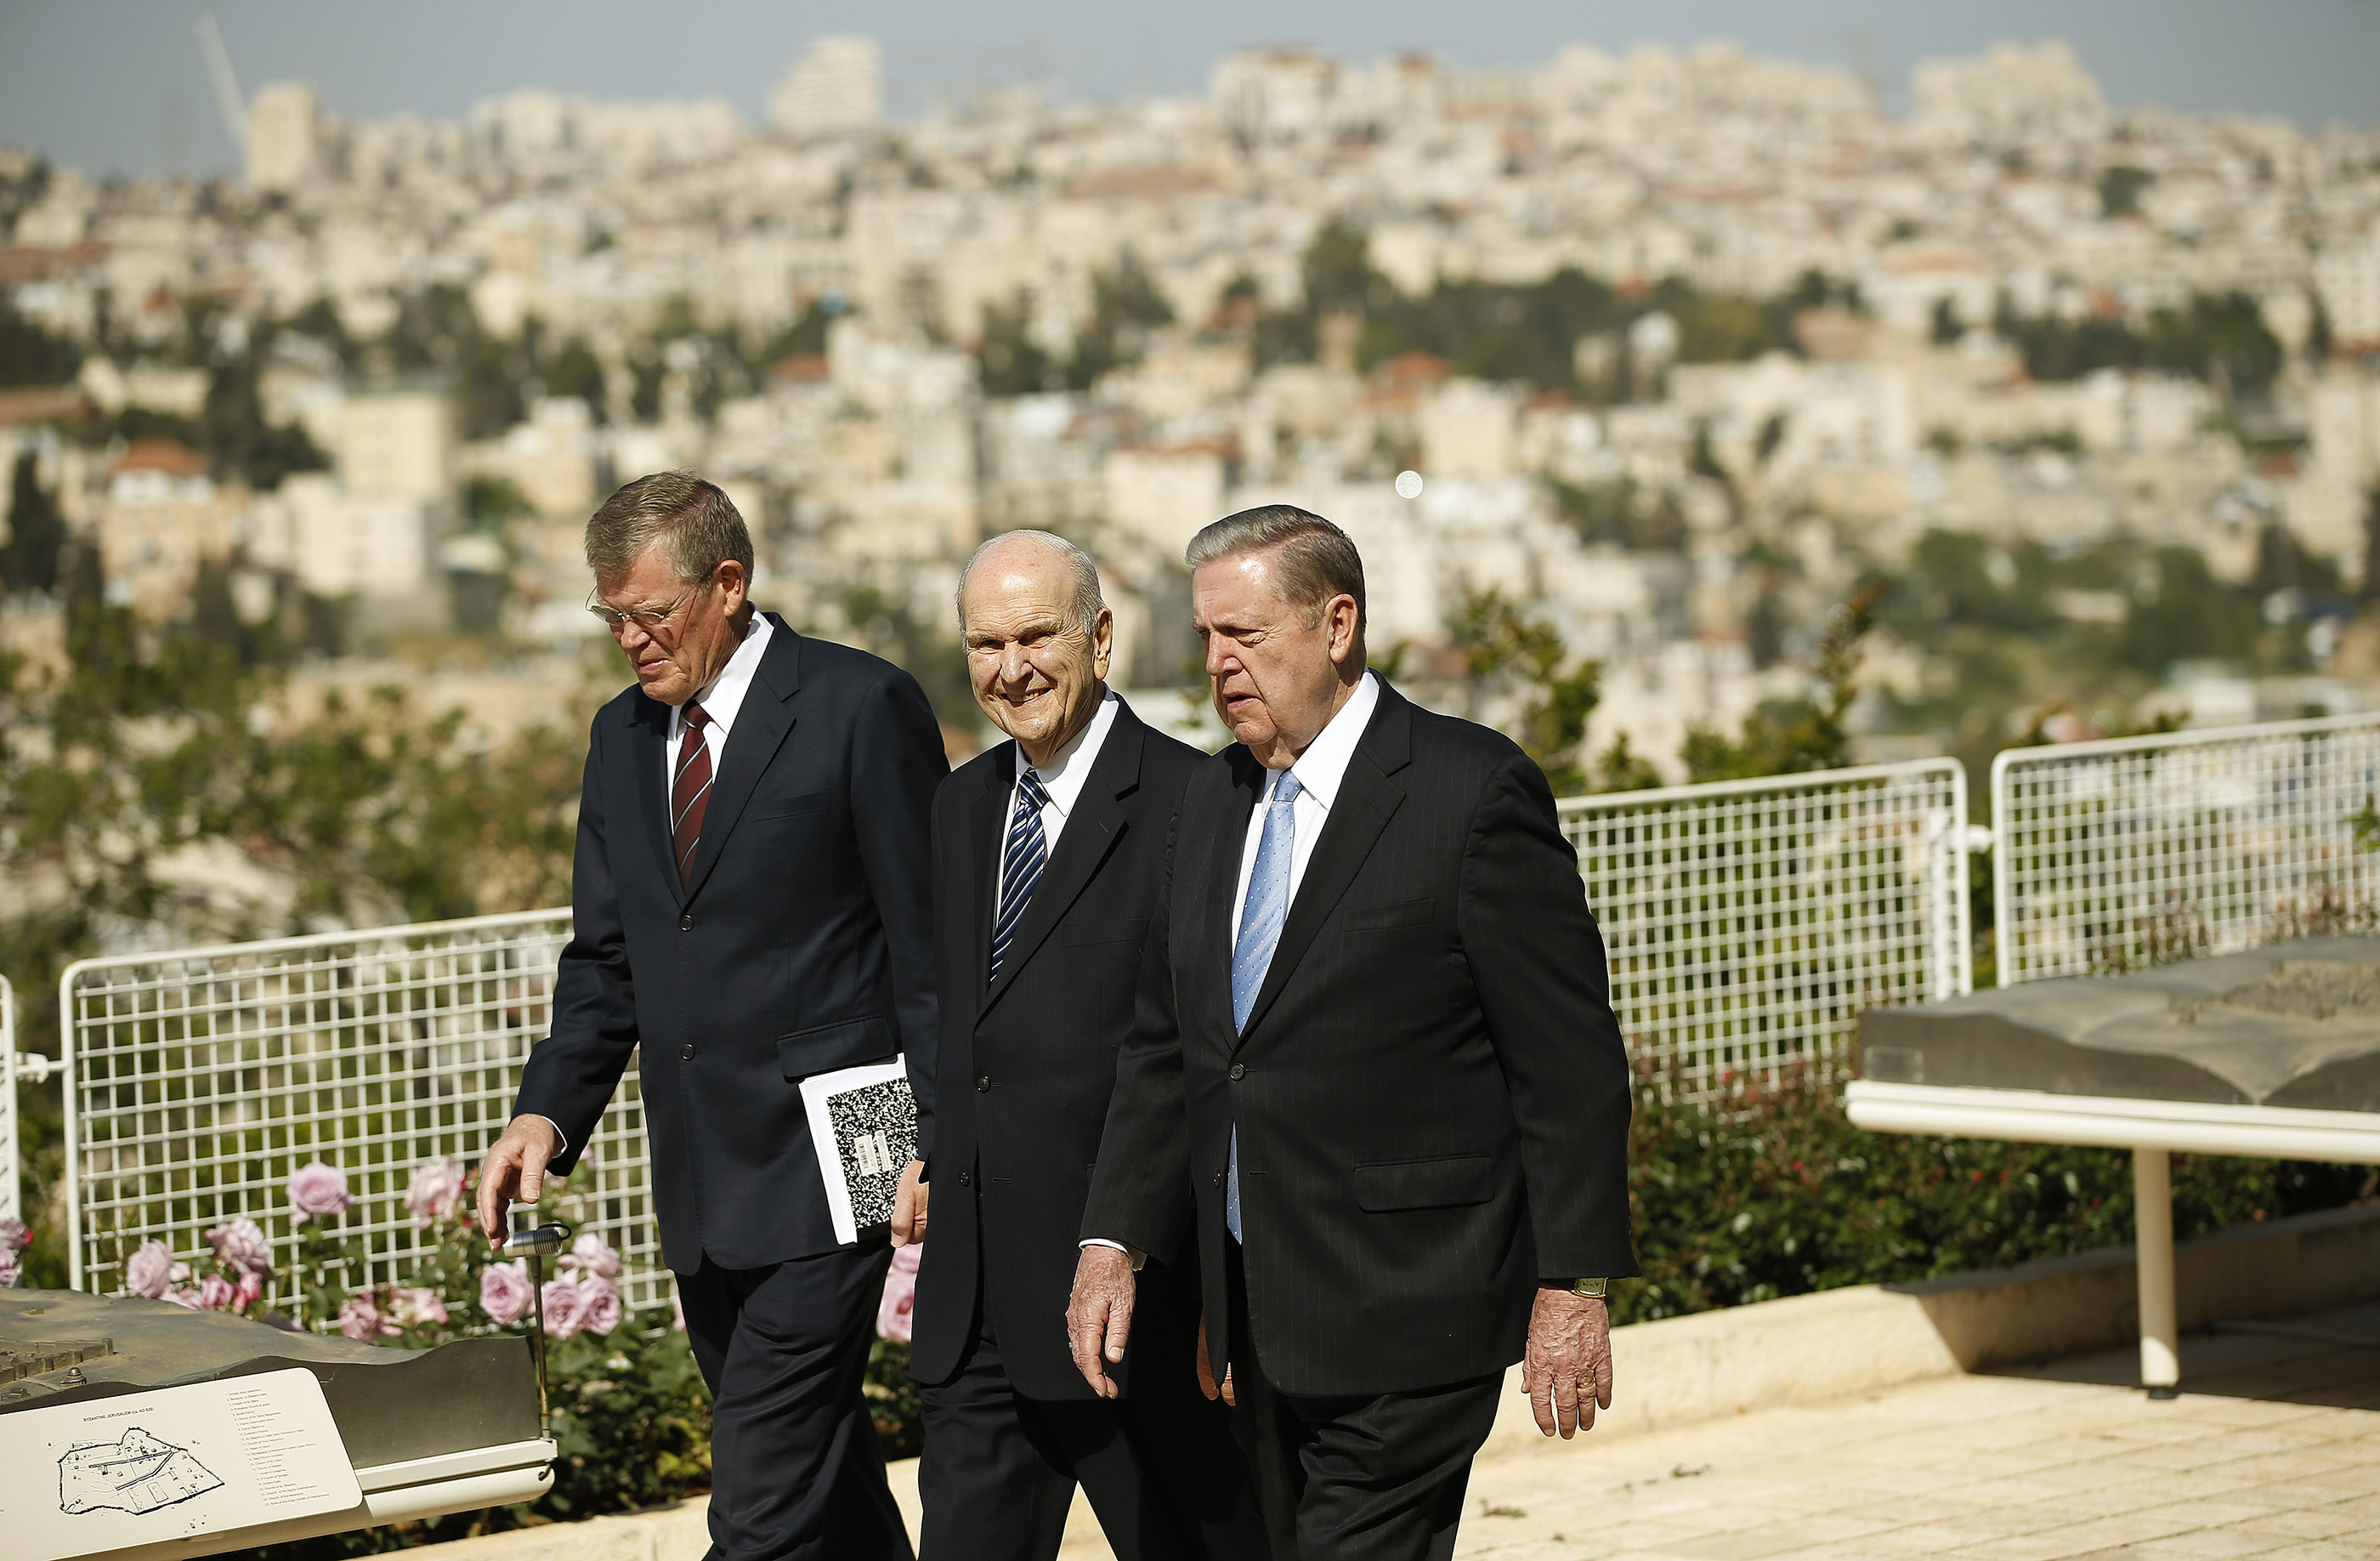 President Russell M. Nelson, president of The Church of Jesus Christ of Latter-day Saints, center, Elder Jeffrey R. Holland, of the Quorum of the Twelve Apostles, right, and District President Dennis Brimhall walk at the BYU Jerusalem Center in Jerusalem on Saturday, April 14, 2018. President Nelson is on a global tour of eight countries.